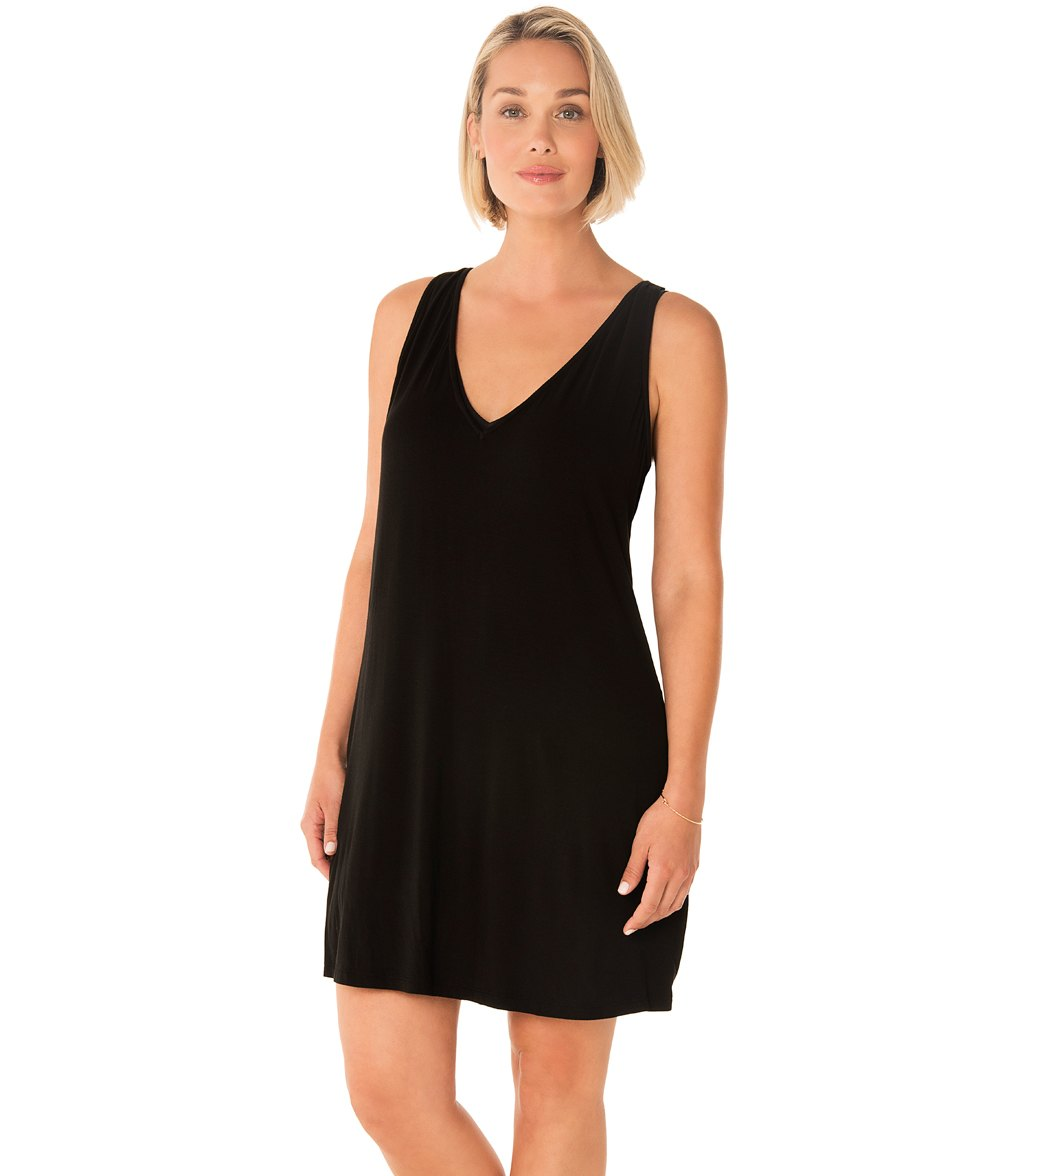 f10af25088d83 Penbrooke Take Cover V-Neck Cover Up Dress at SwimOutlet.com - Free Shipping